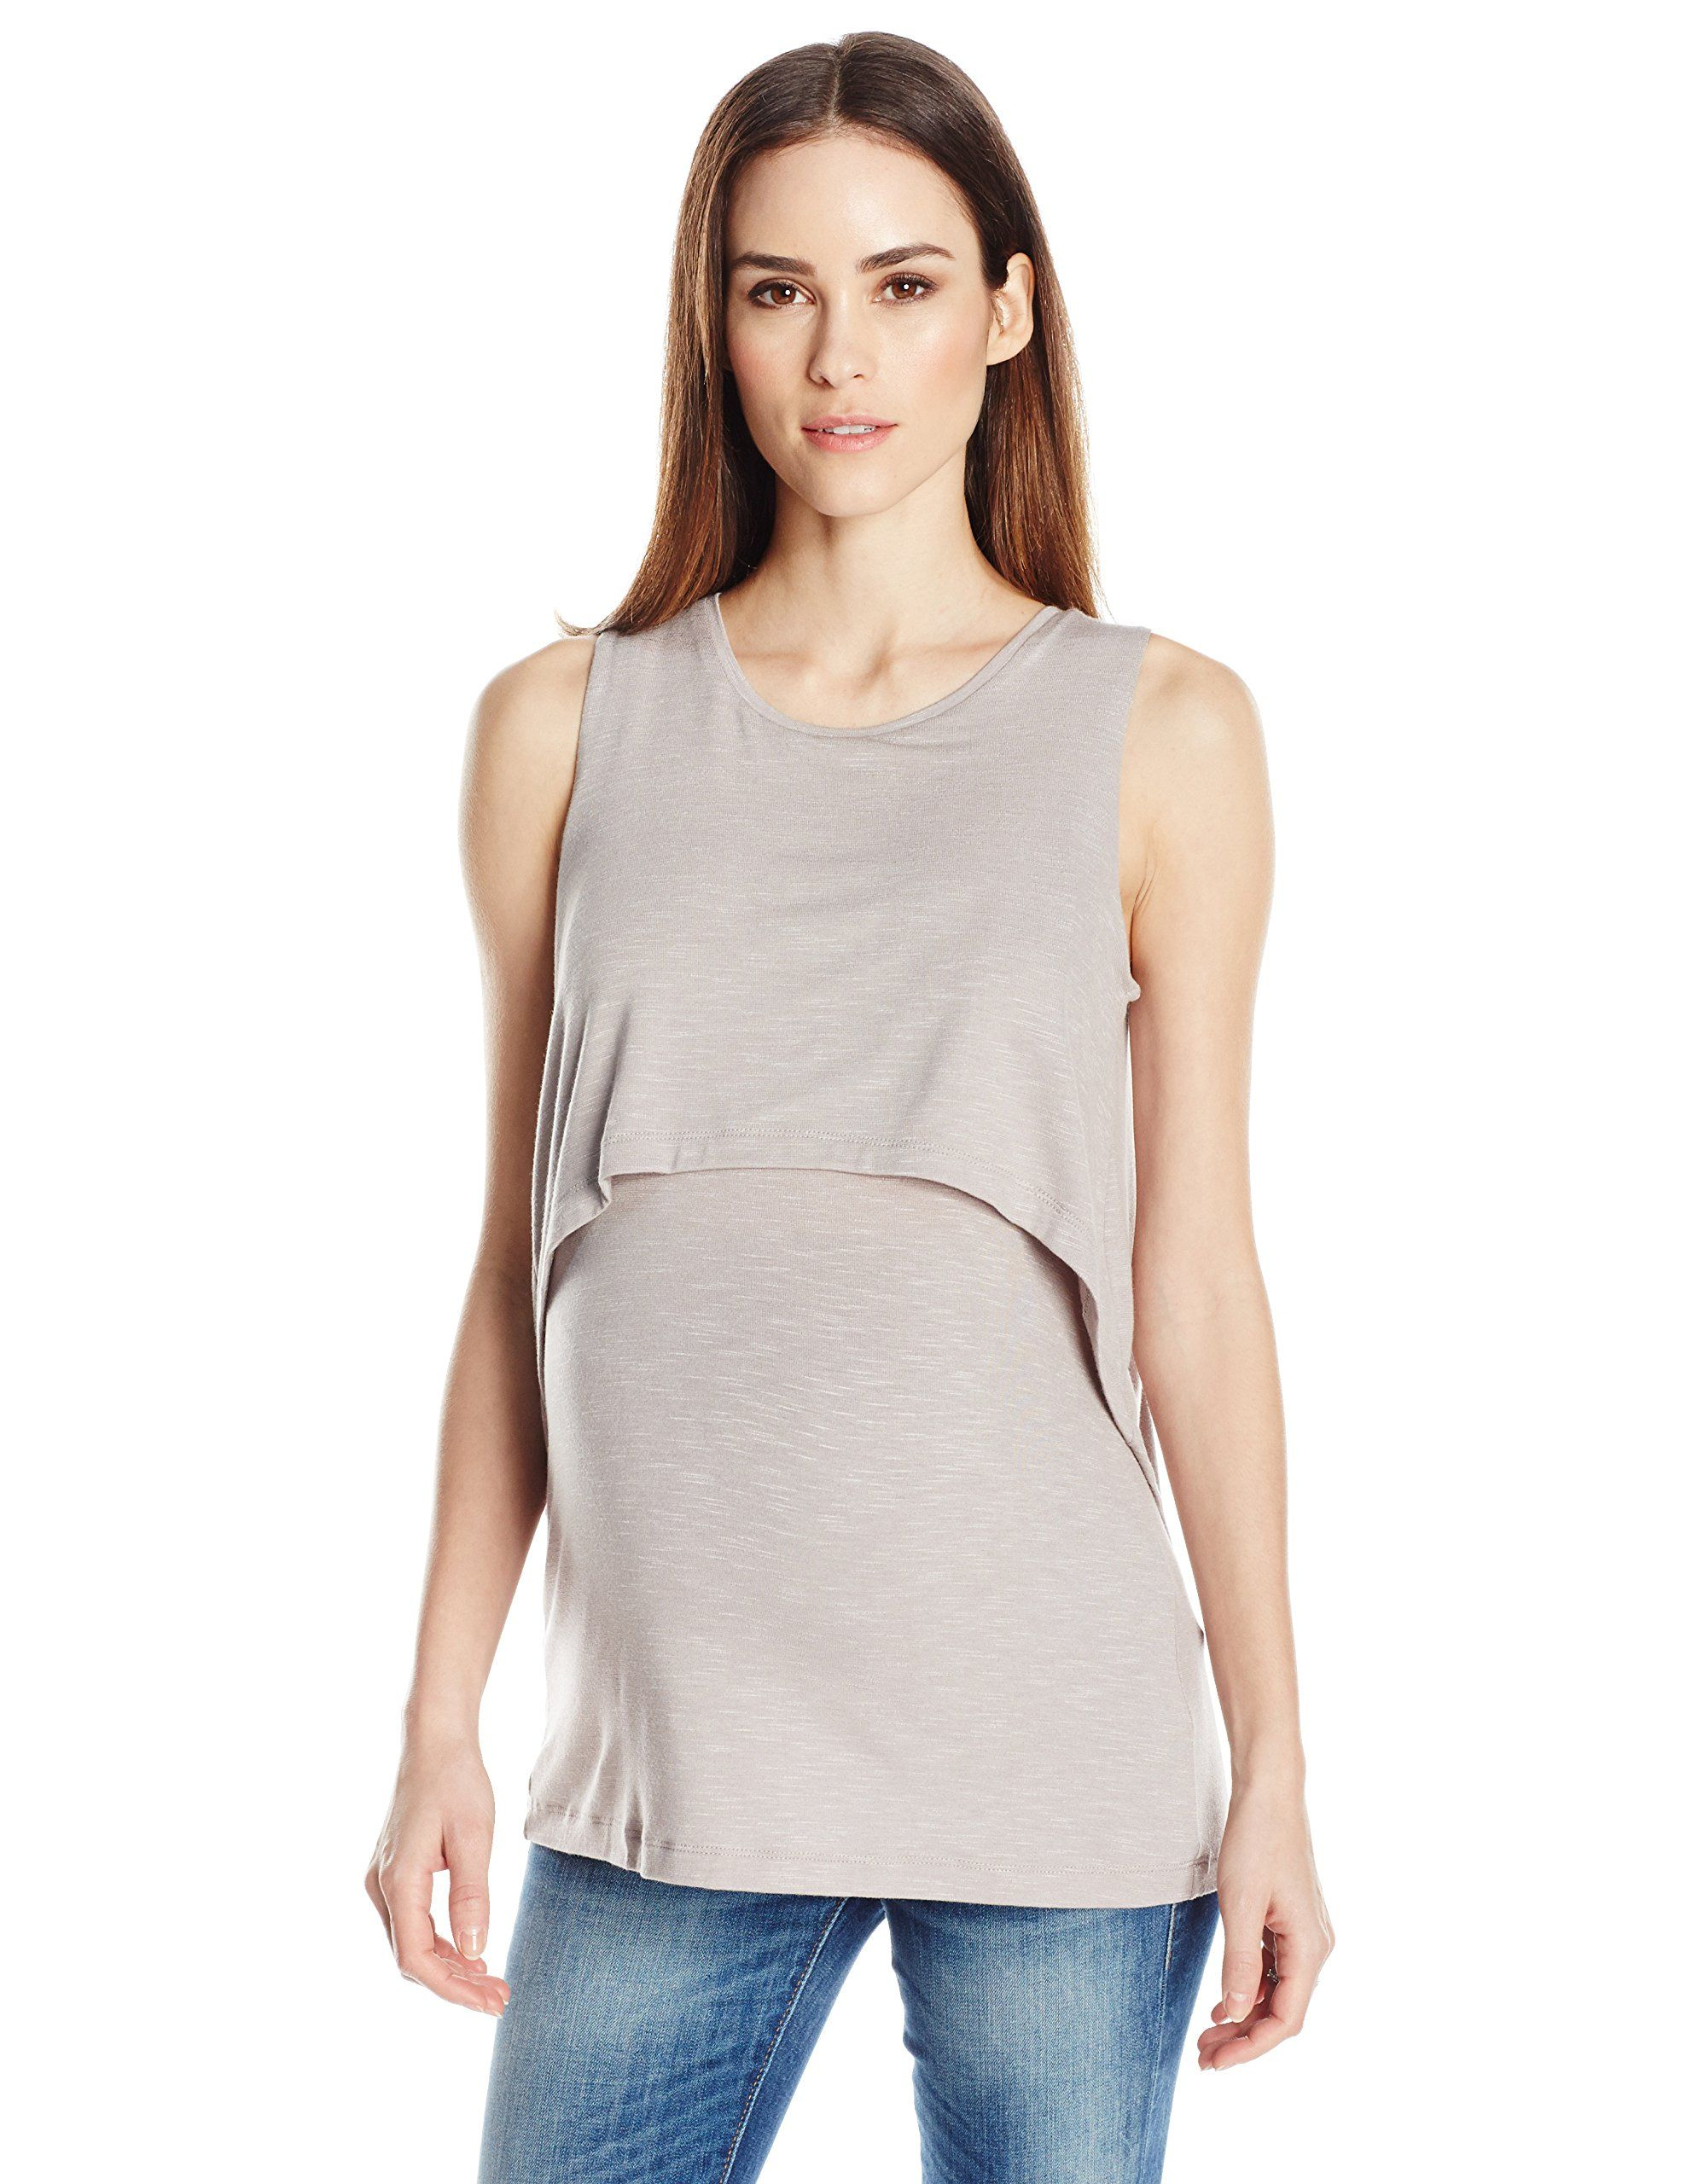 43bda37e5e76f nursing tops - Ripe Maternity Womens Maternity Summer Swing Back Nursing  Tank Sand XS * Click picture to assess more details. (This is an affiliate  link).